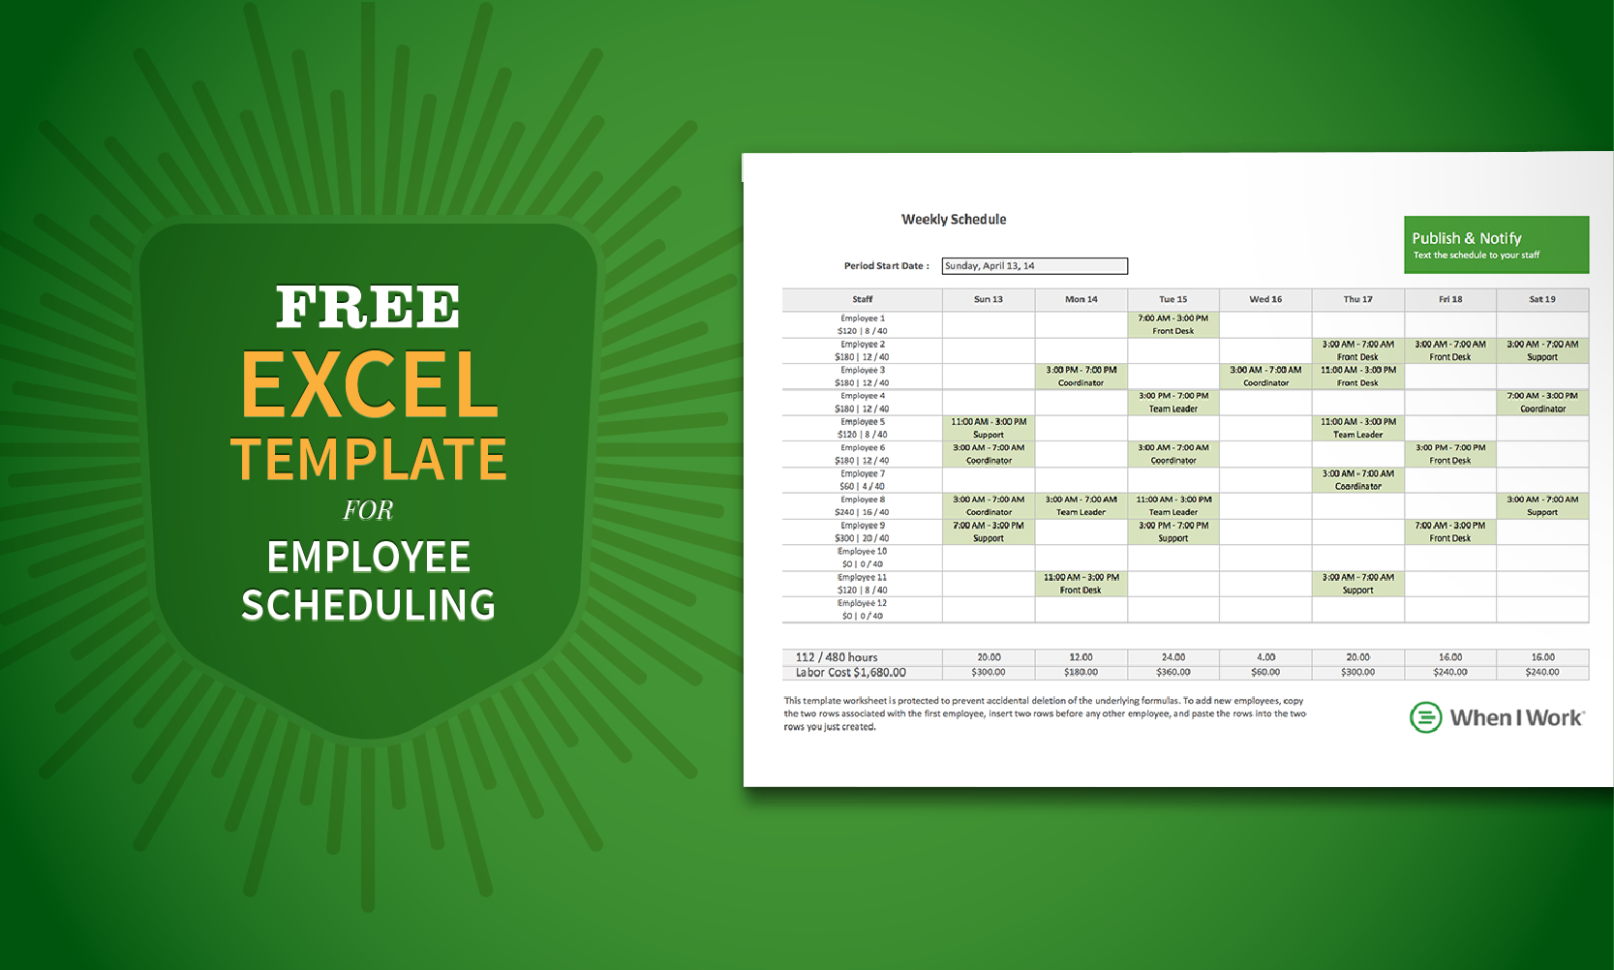 Free Excel Template For Employee Scheduling   When I Work With Free Spreadsheets Templates